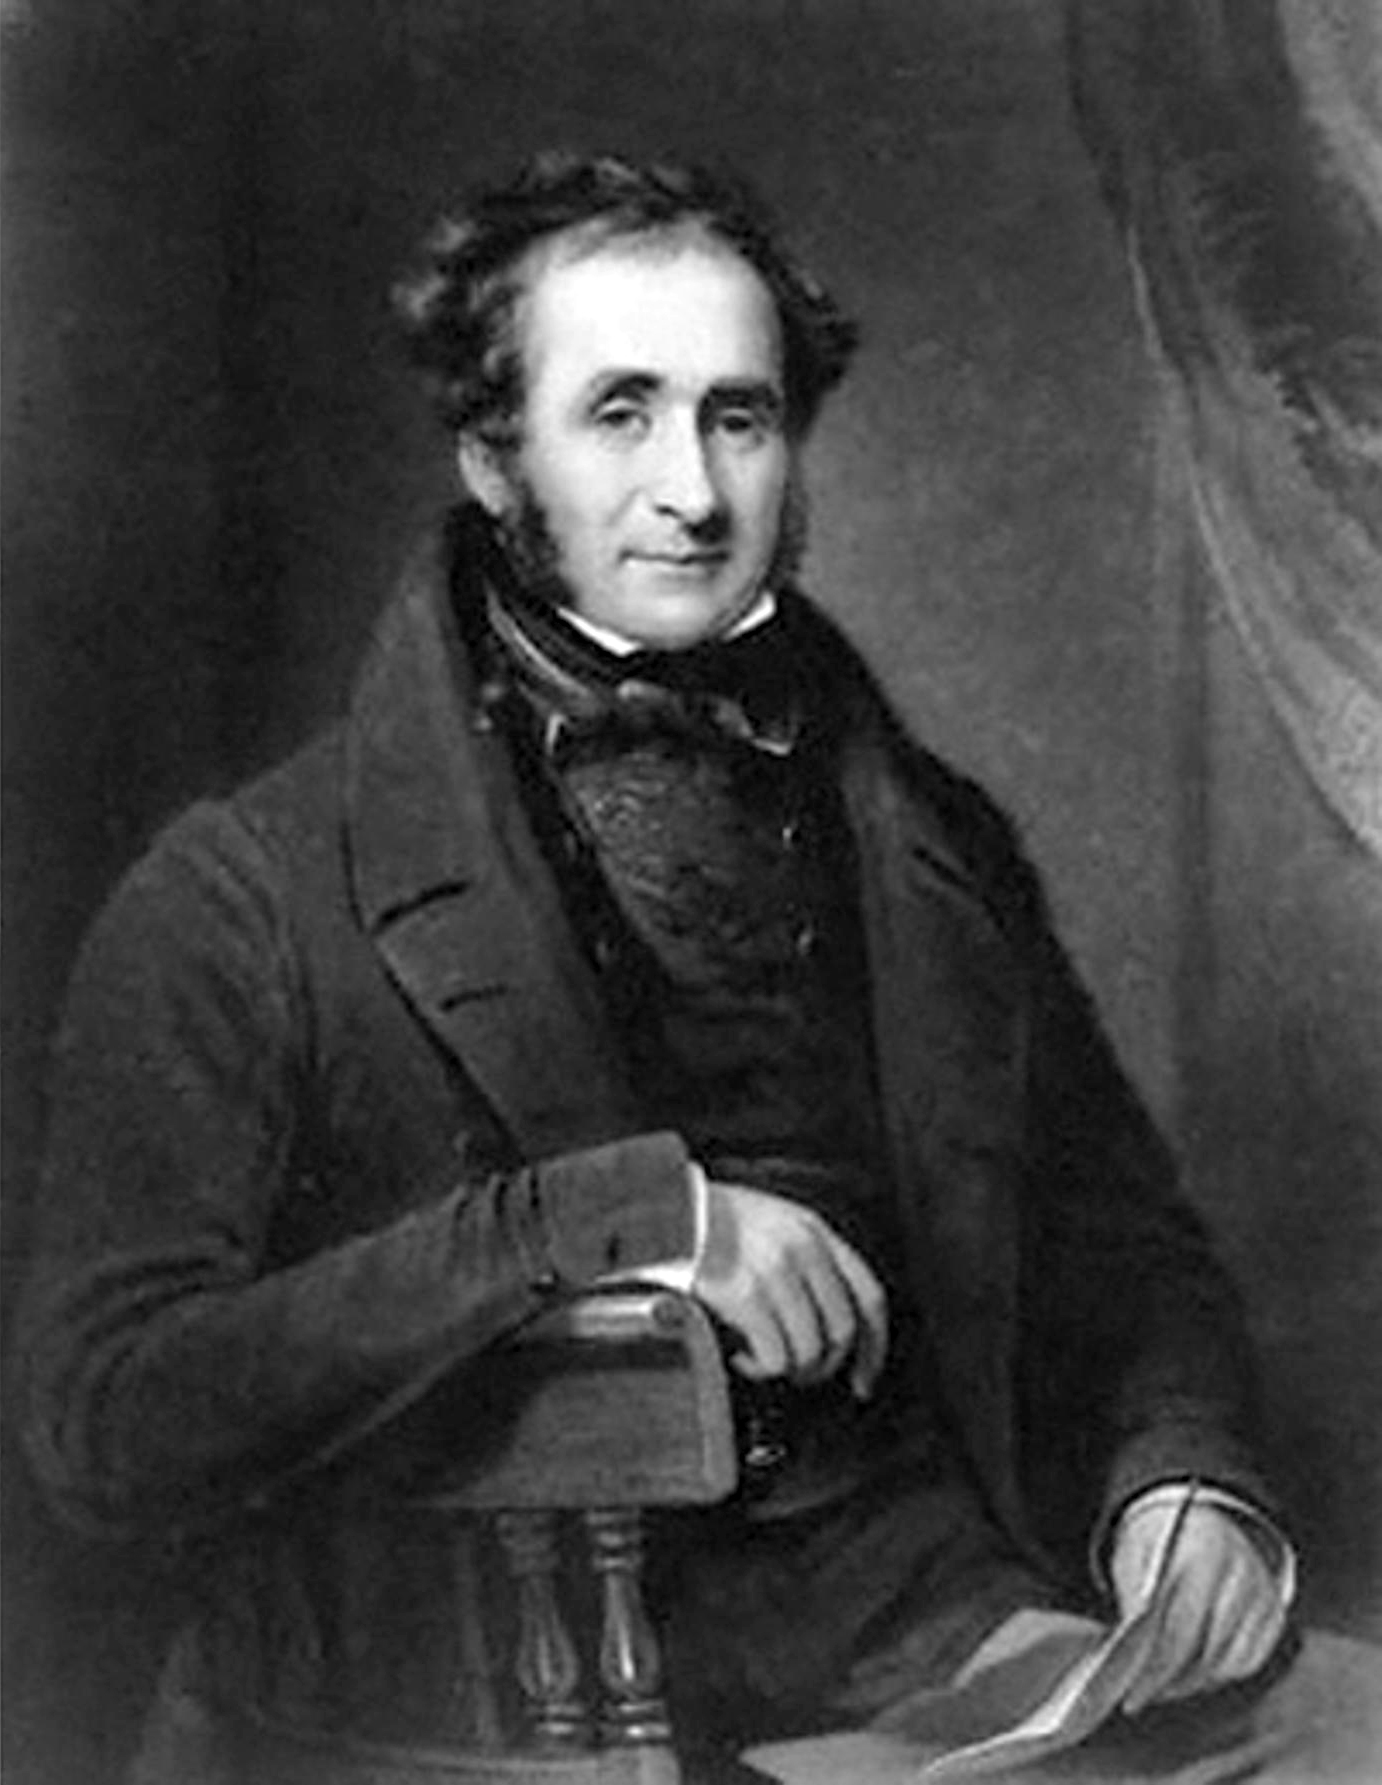 James Matheson   Founder of The Jardine and Matheson Company, Opium smugglers